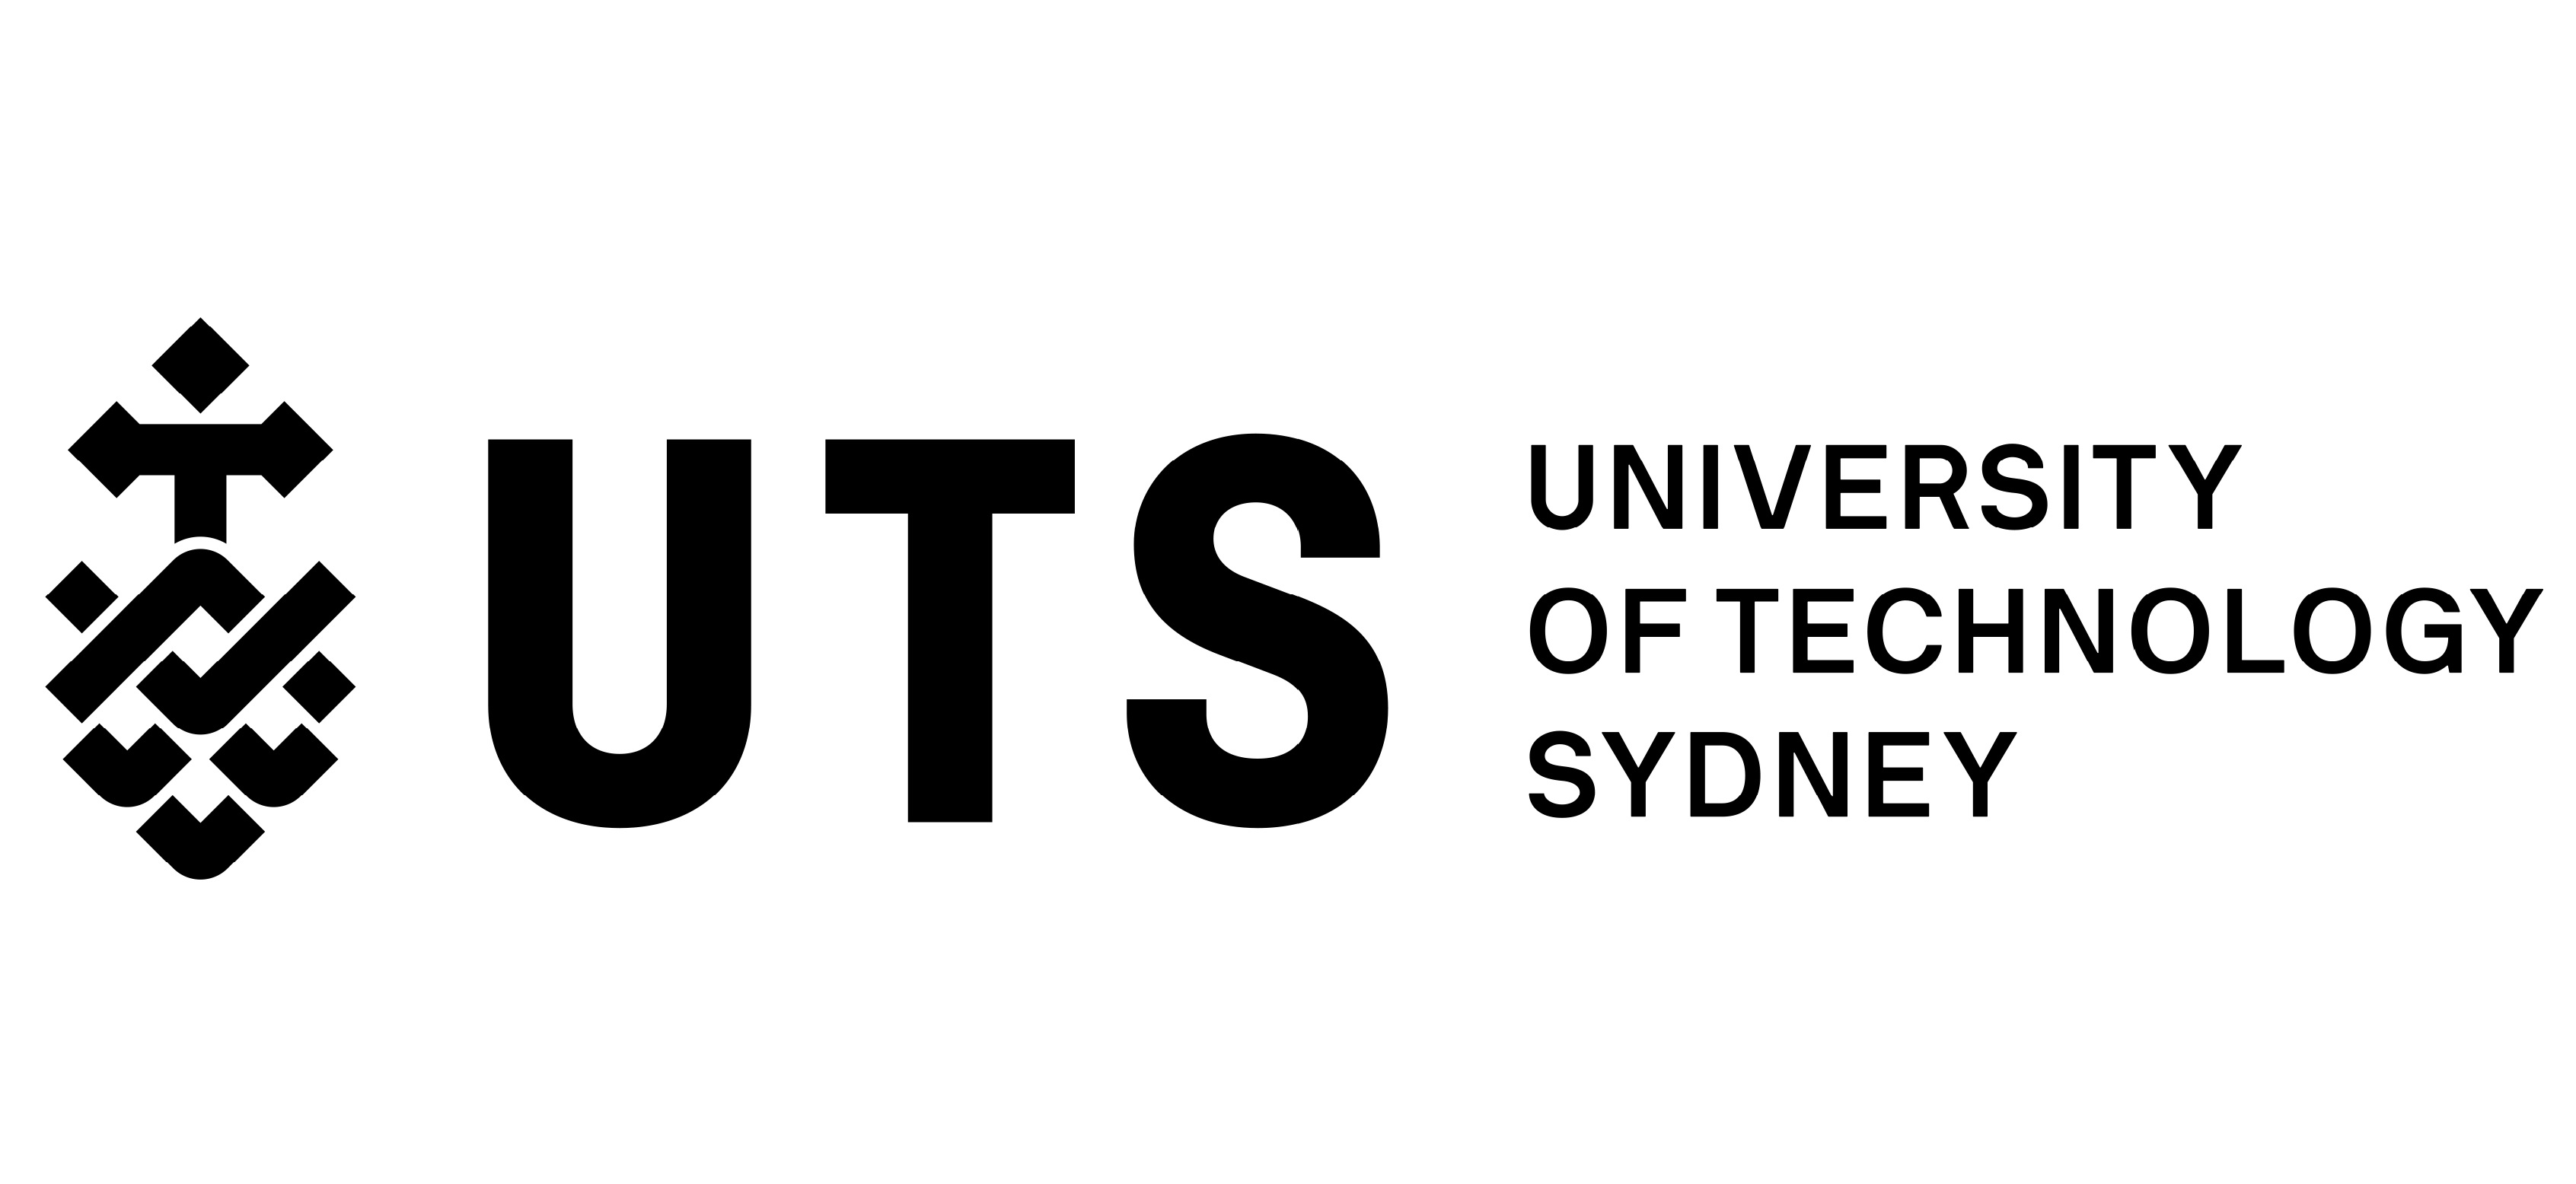 University of Technology, Sydney